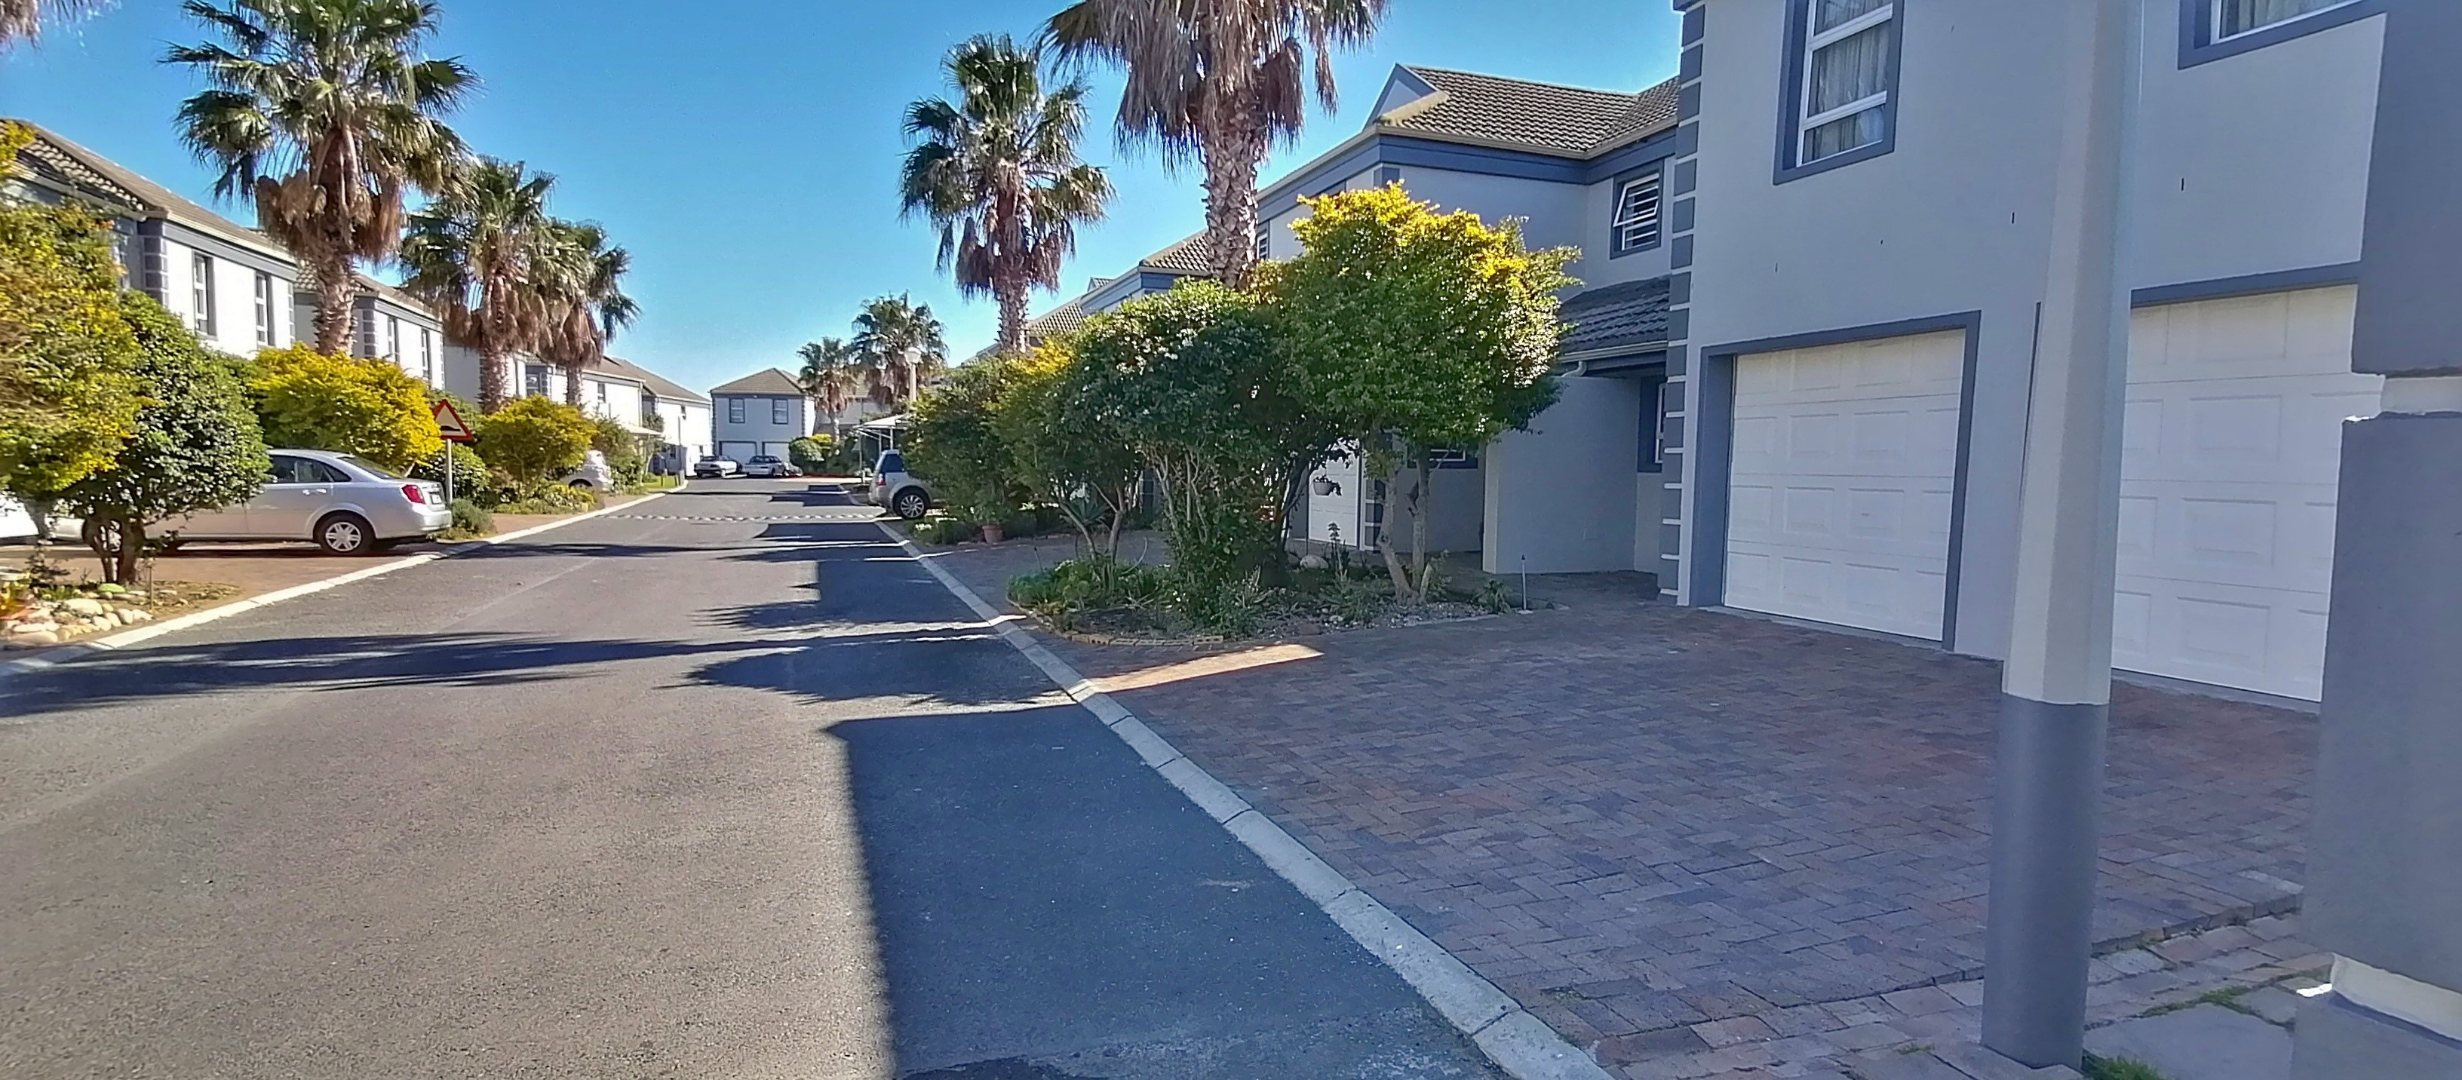 3 Bedroom Townhouse For Sale in Whispering Pines